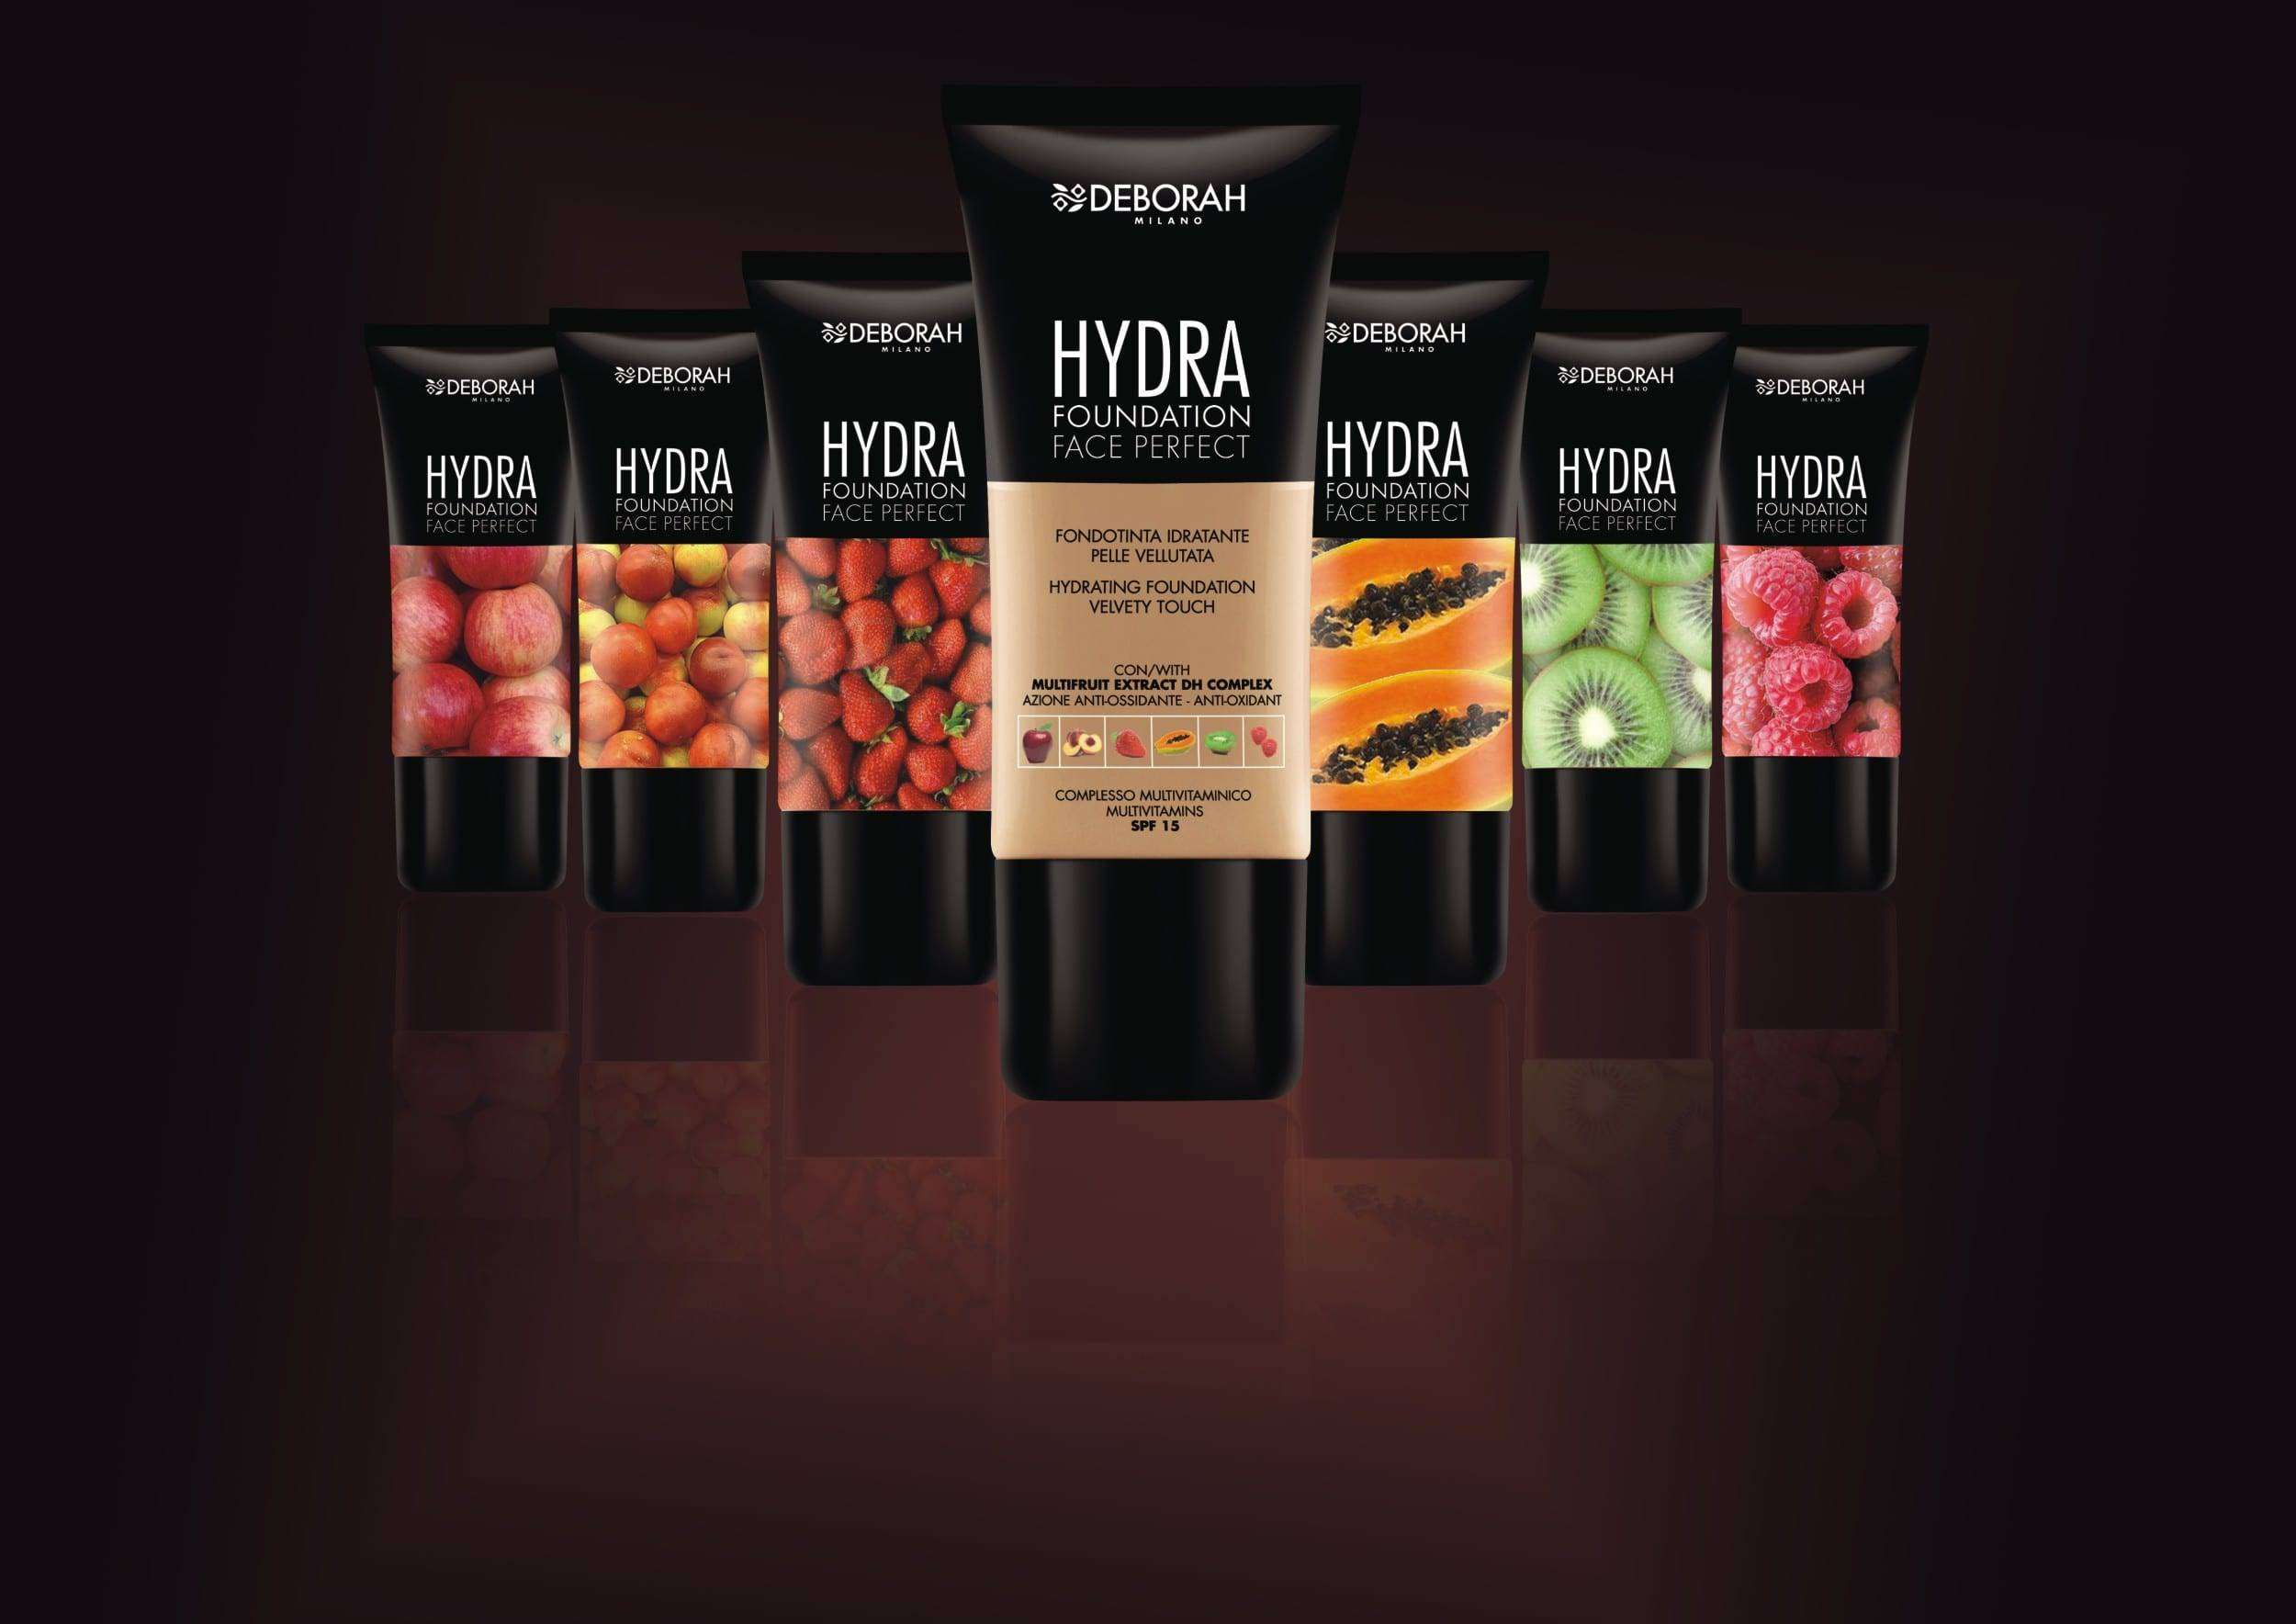 hydra foundation